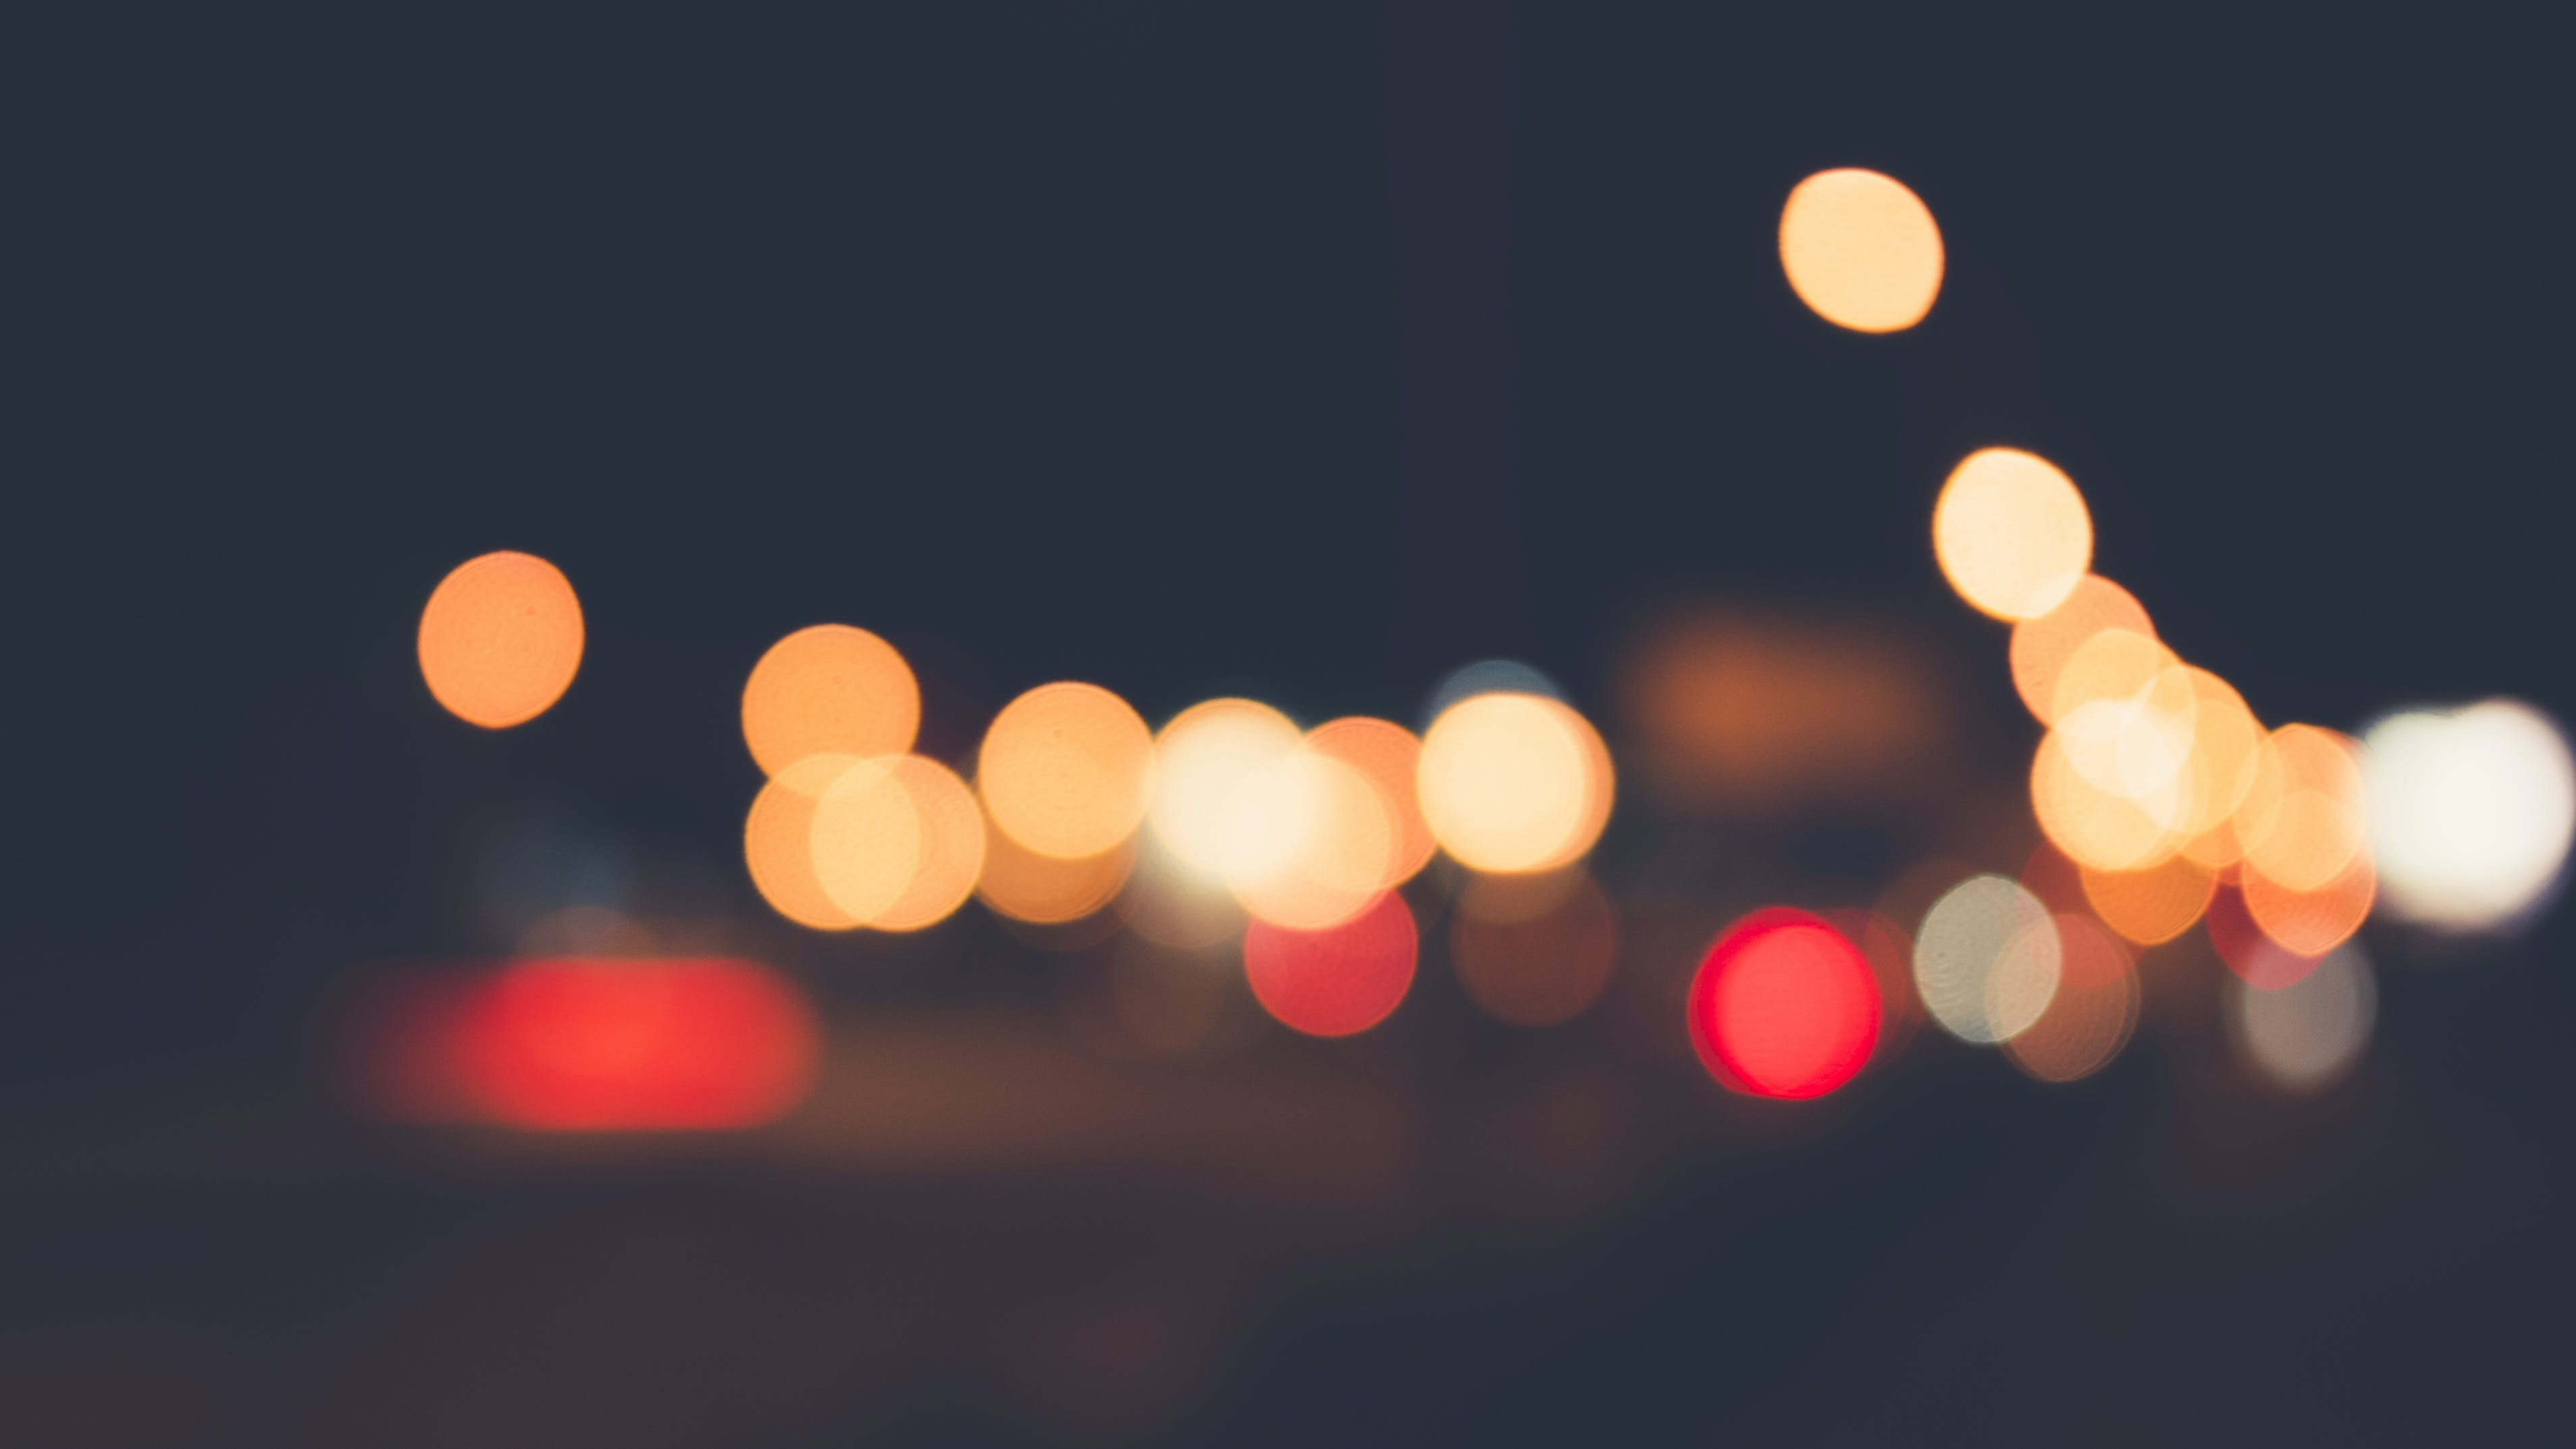 Free stock photo of traffic, lights, night, dark